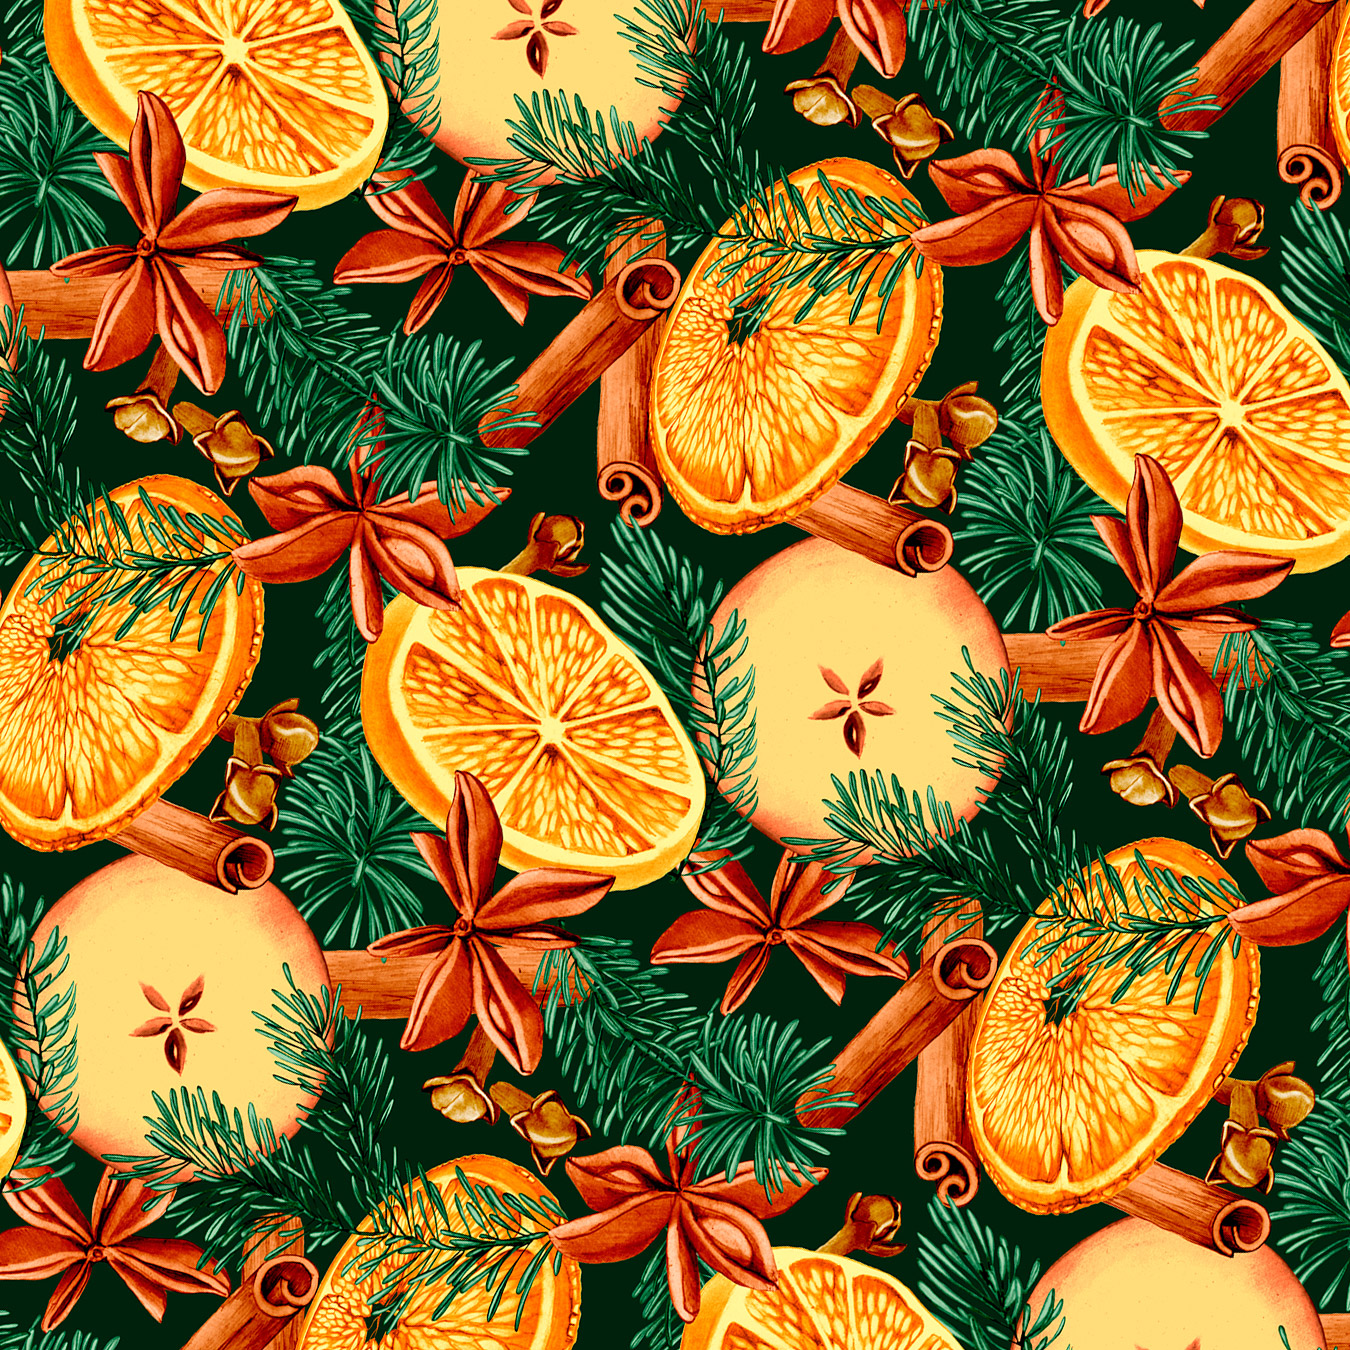 Orange and spice repeat pattern color